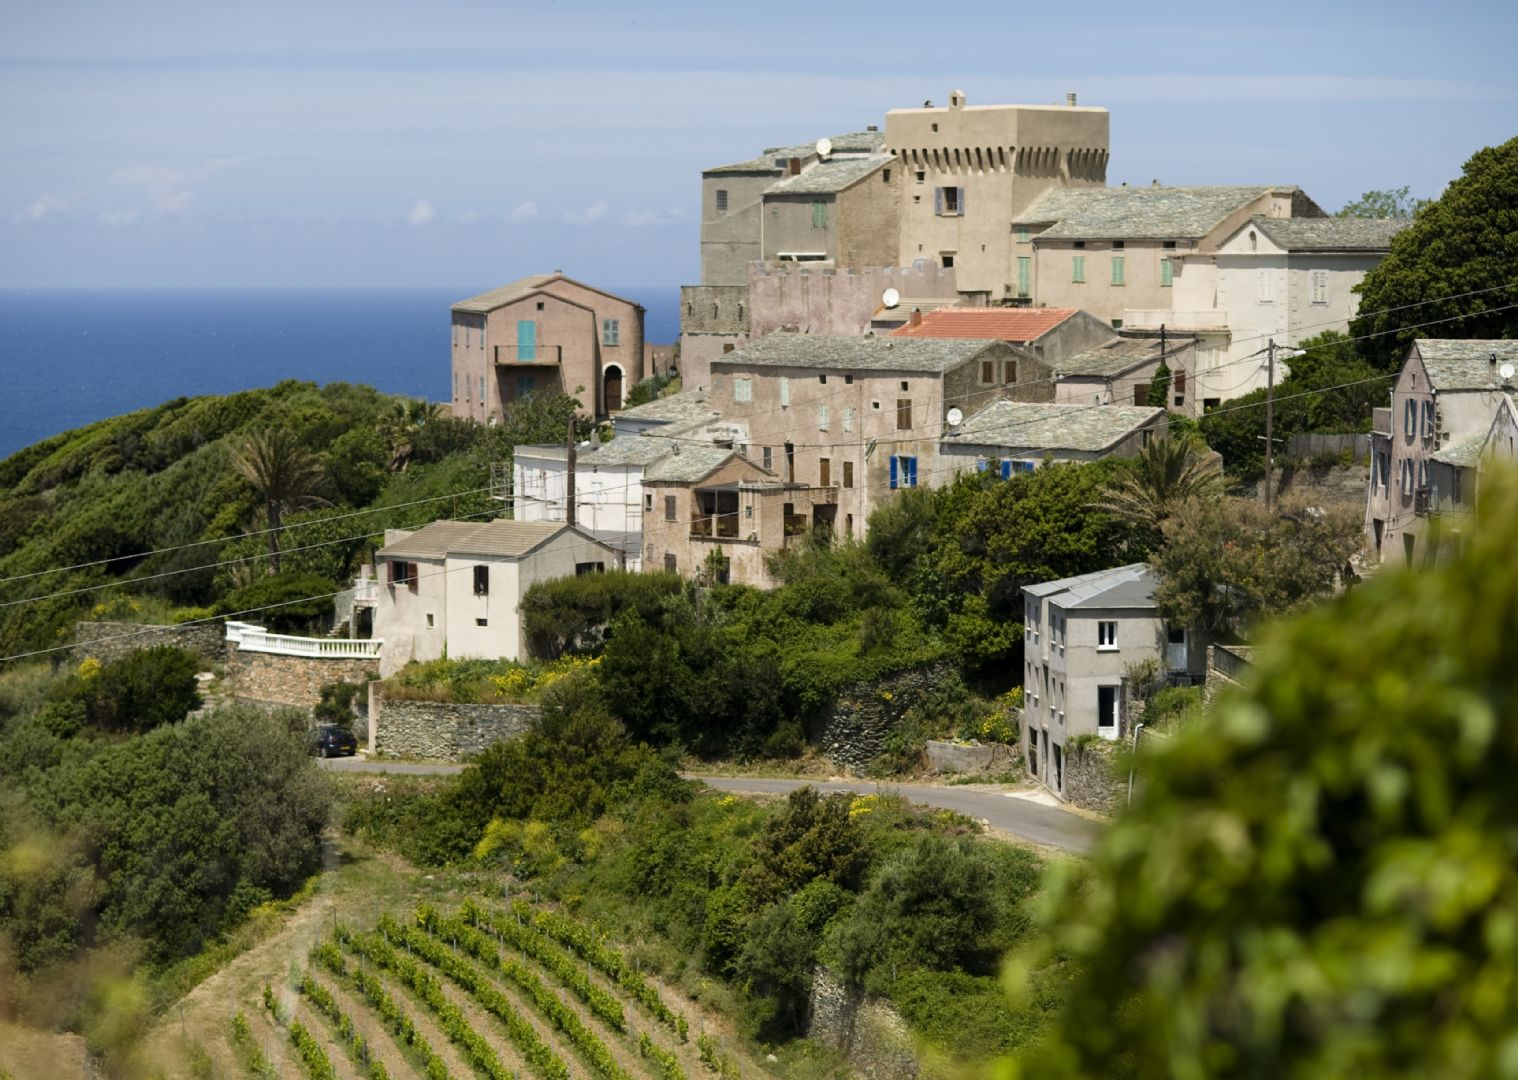 guided-road-cycling-holiday-in-france-corsica-old-city-views.jpg - France - Corsica - Southern Secrets - Guided Road Cycling Holiday - Road Cycling